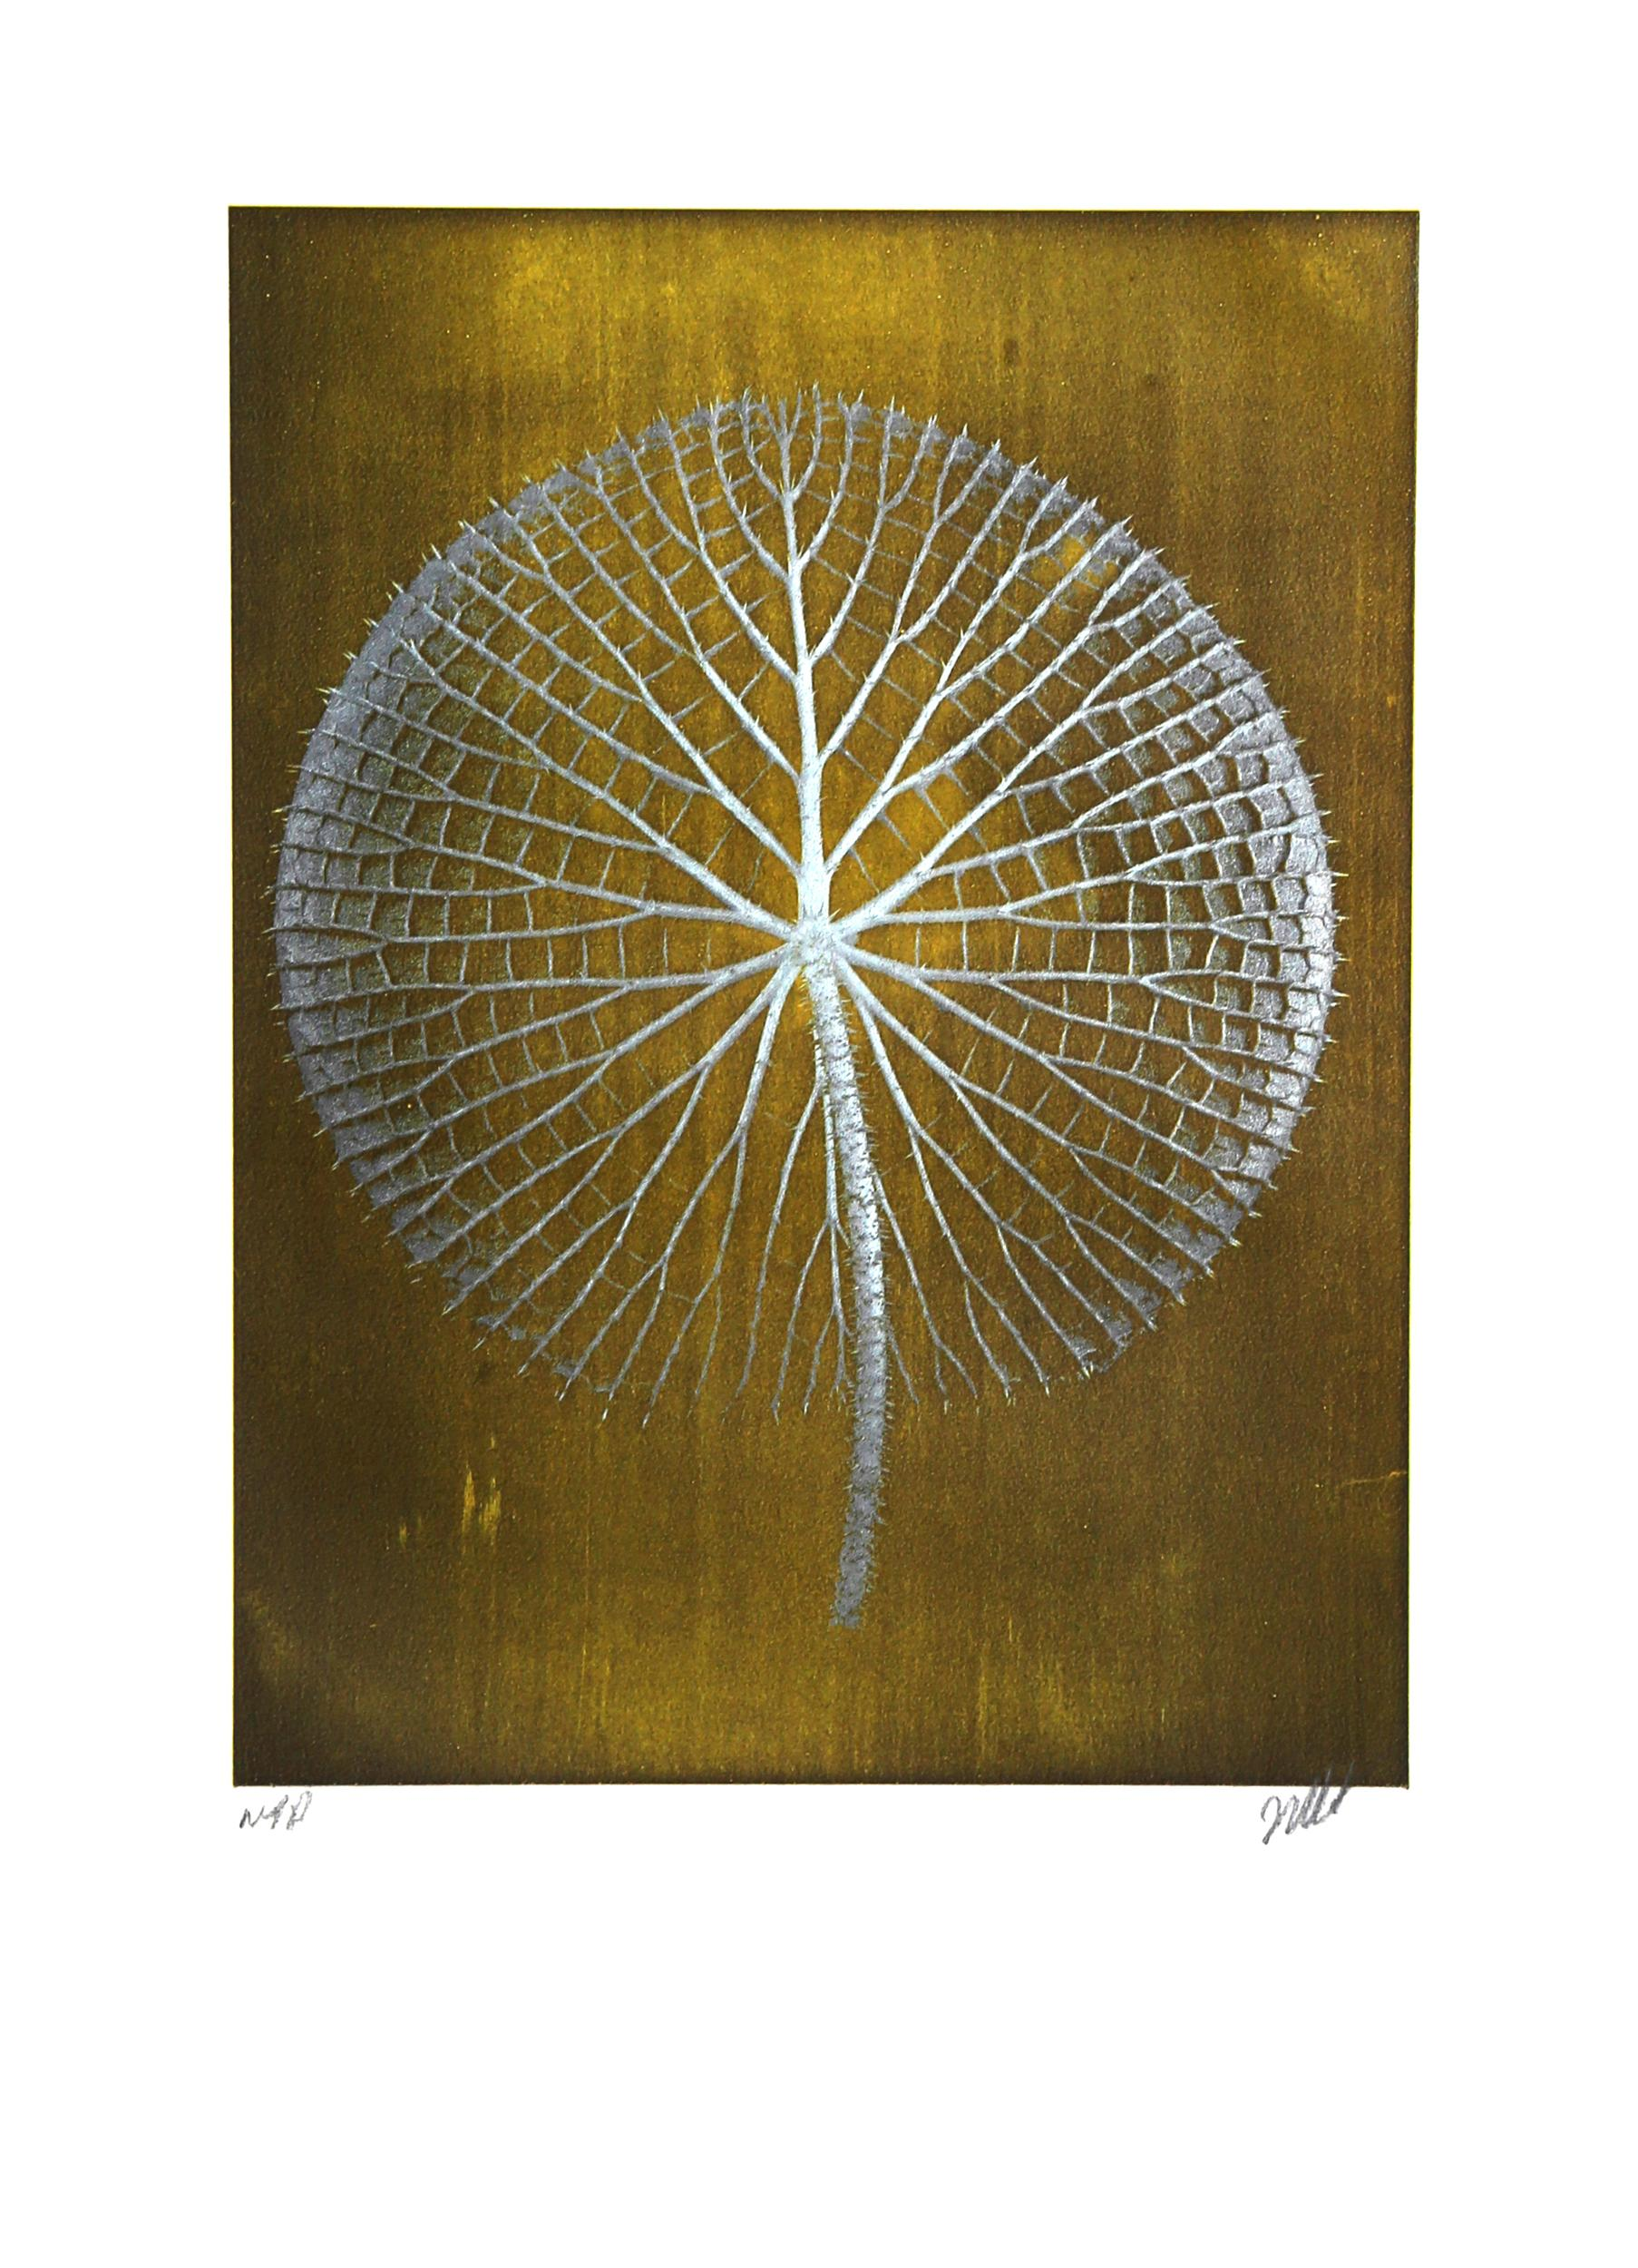 Jonathan Singer, Giant White Amazon Waterlily on Gold, Digital Photograph